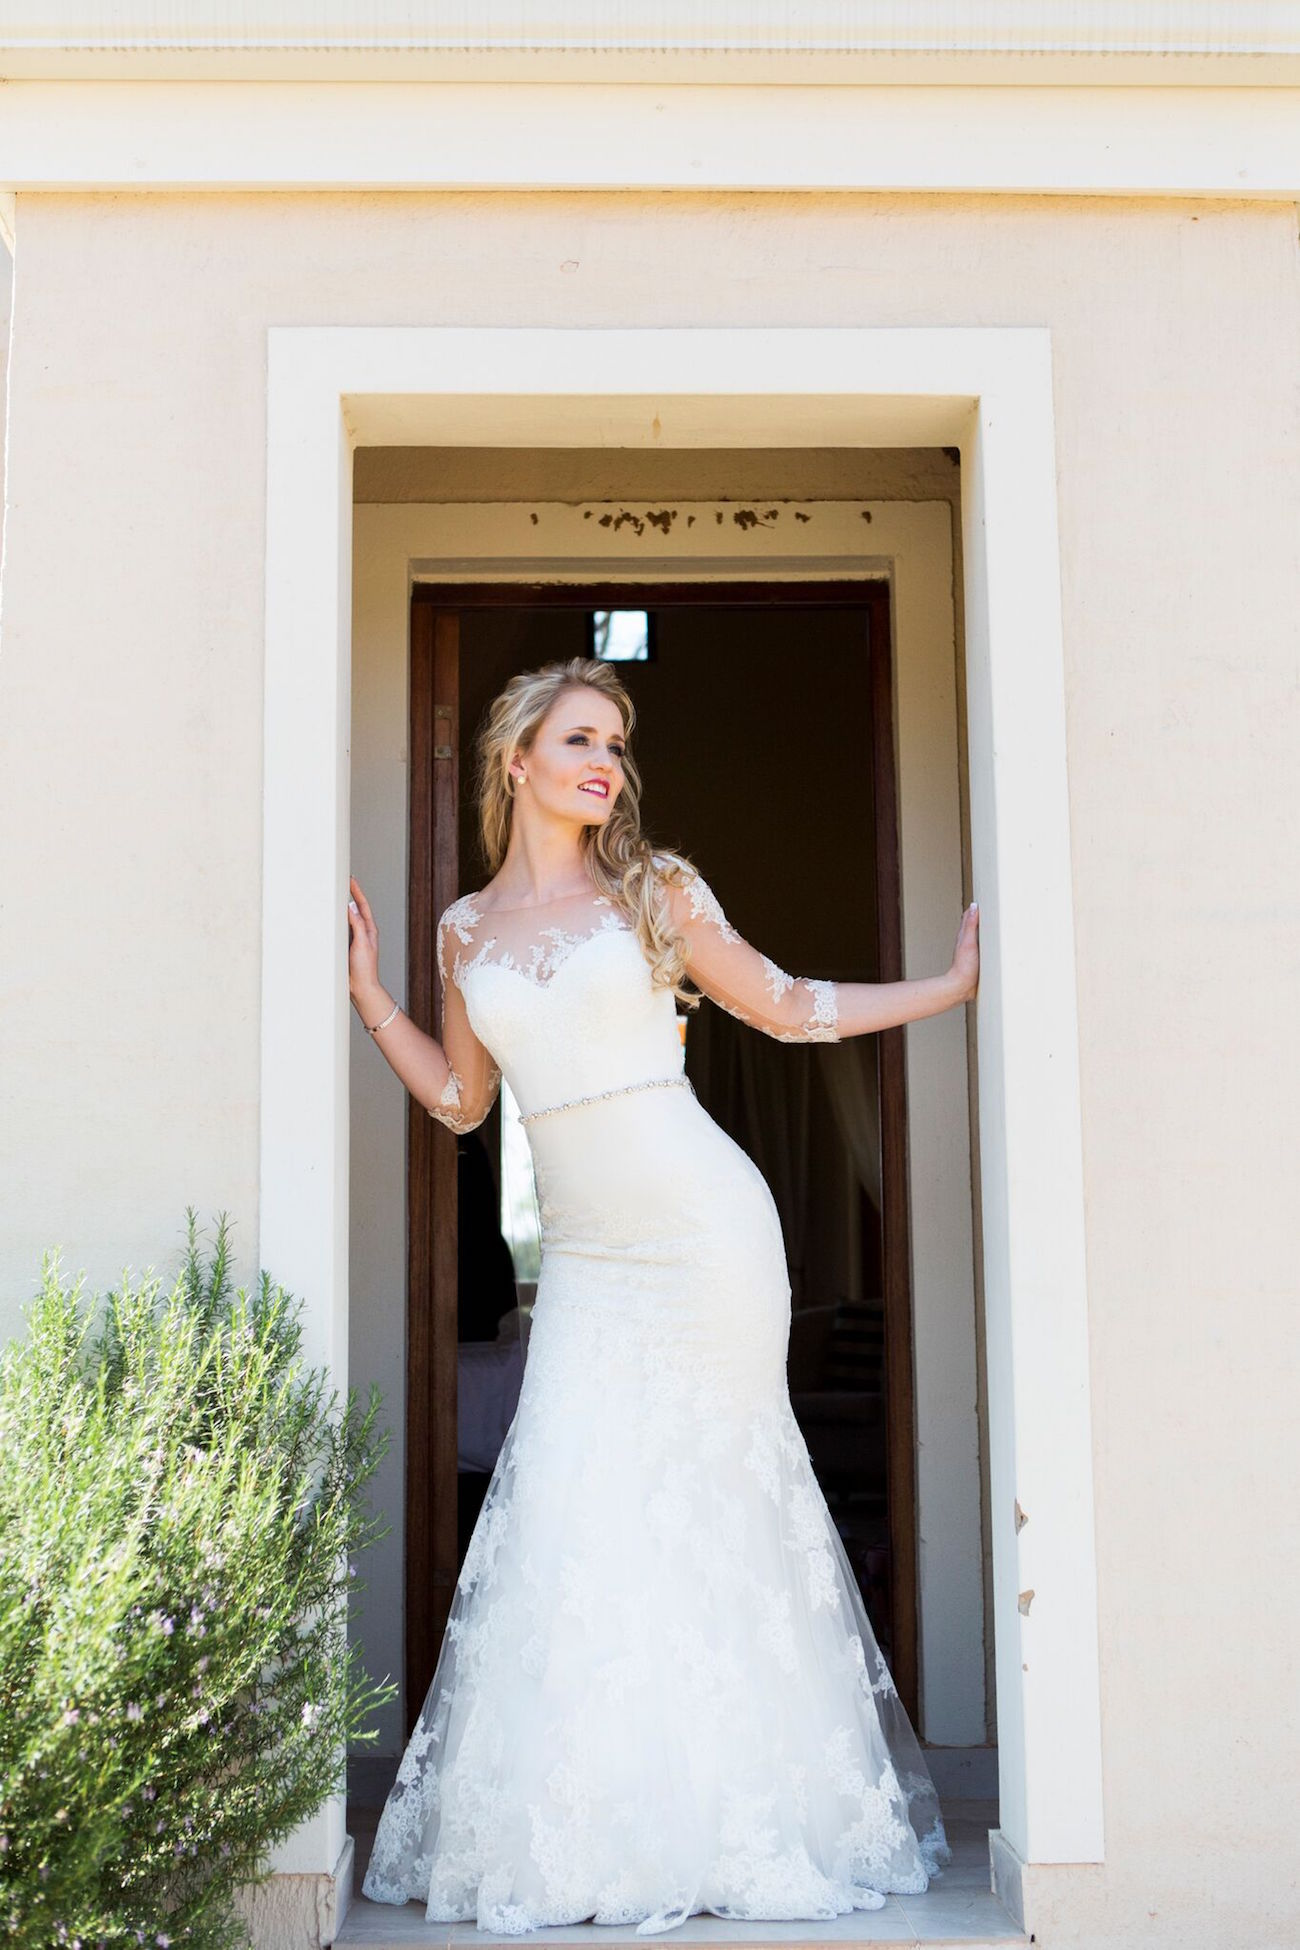 Bridal Wardrobe Wedding Dress | Image: Daniel West